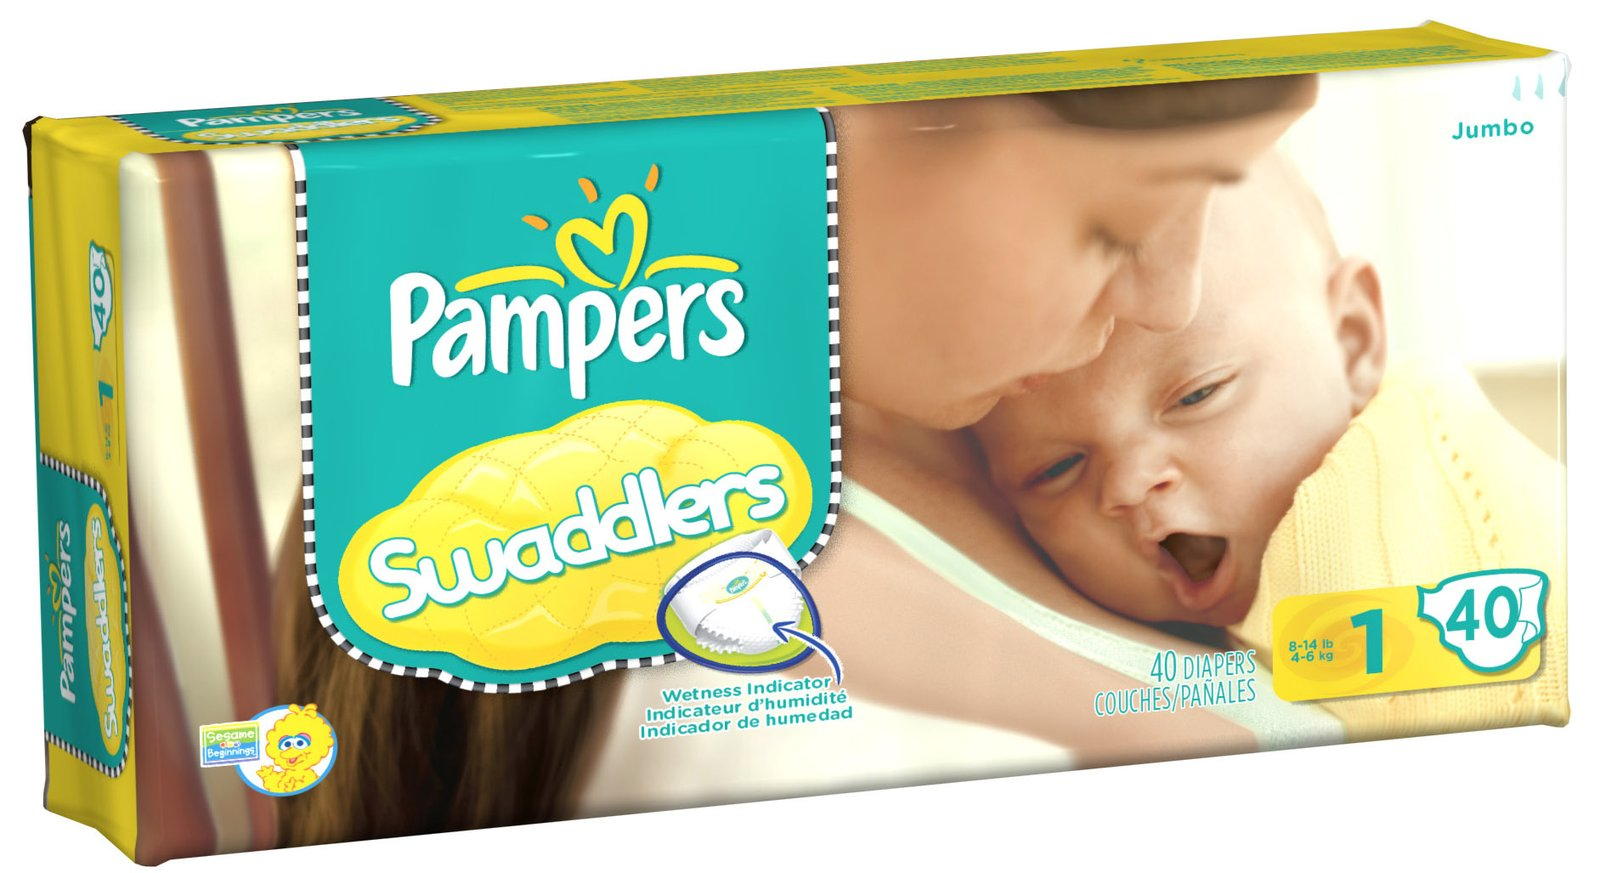 pampers swaddlers coupons - HD1600×873